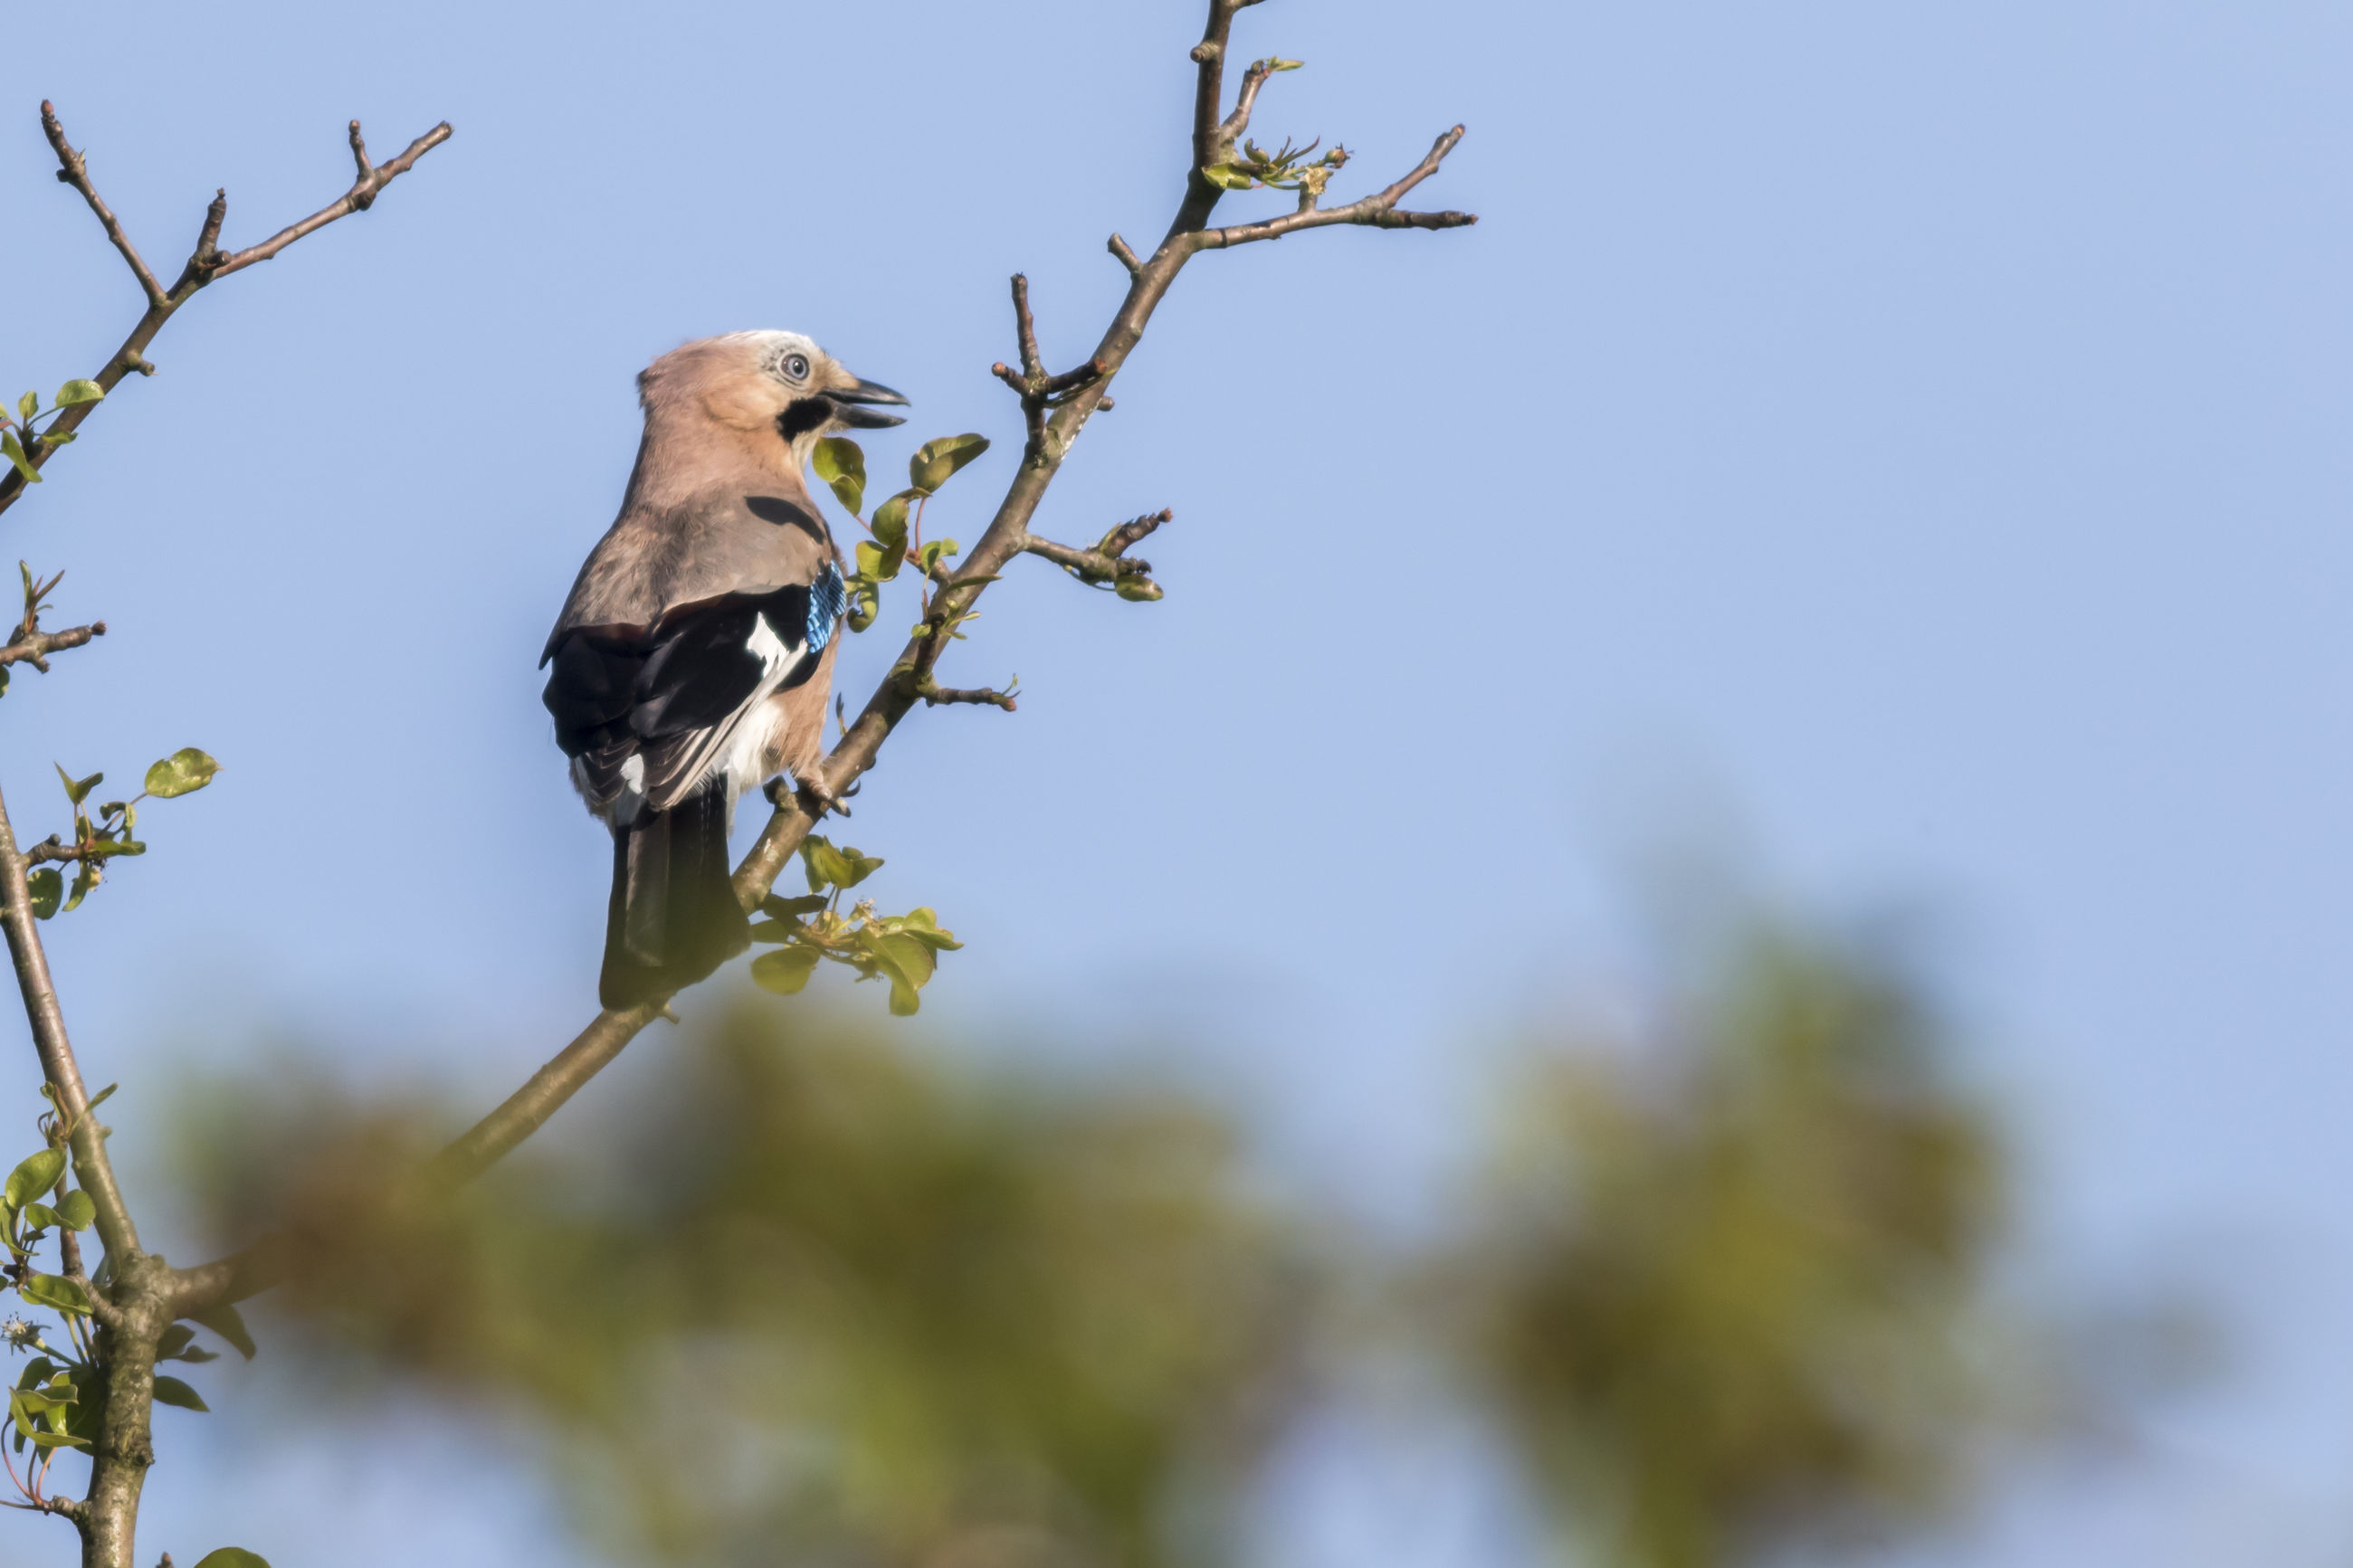 LOW ANGLE VIEW OF BIRD PERCHING ON BRANCH AGAINST CLEAR SKY